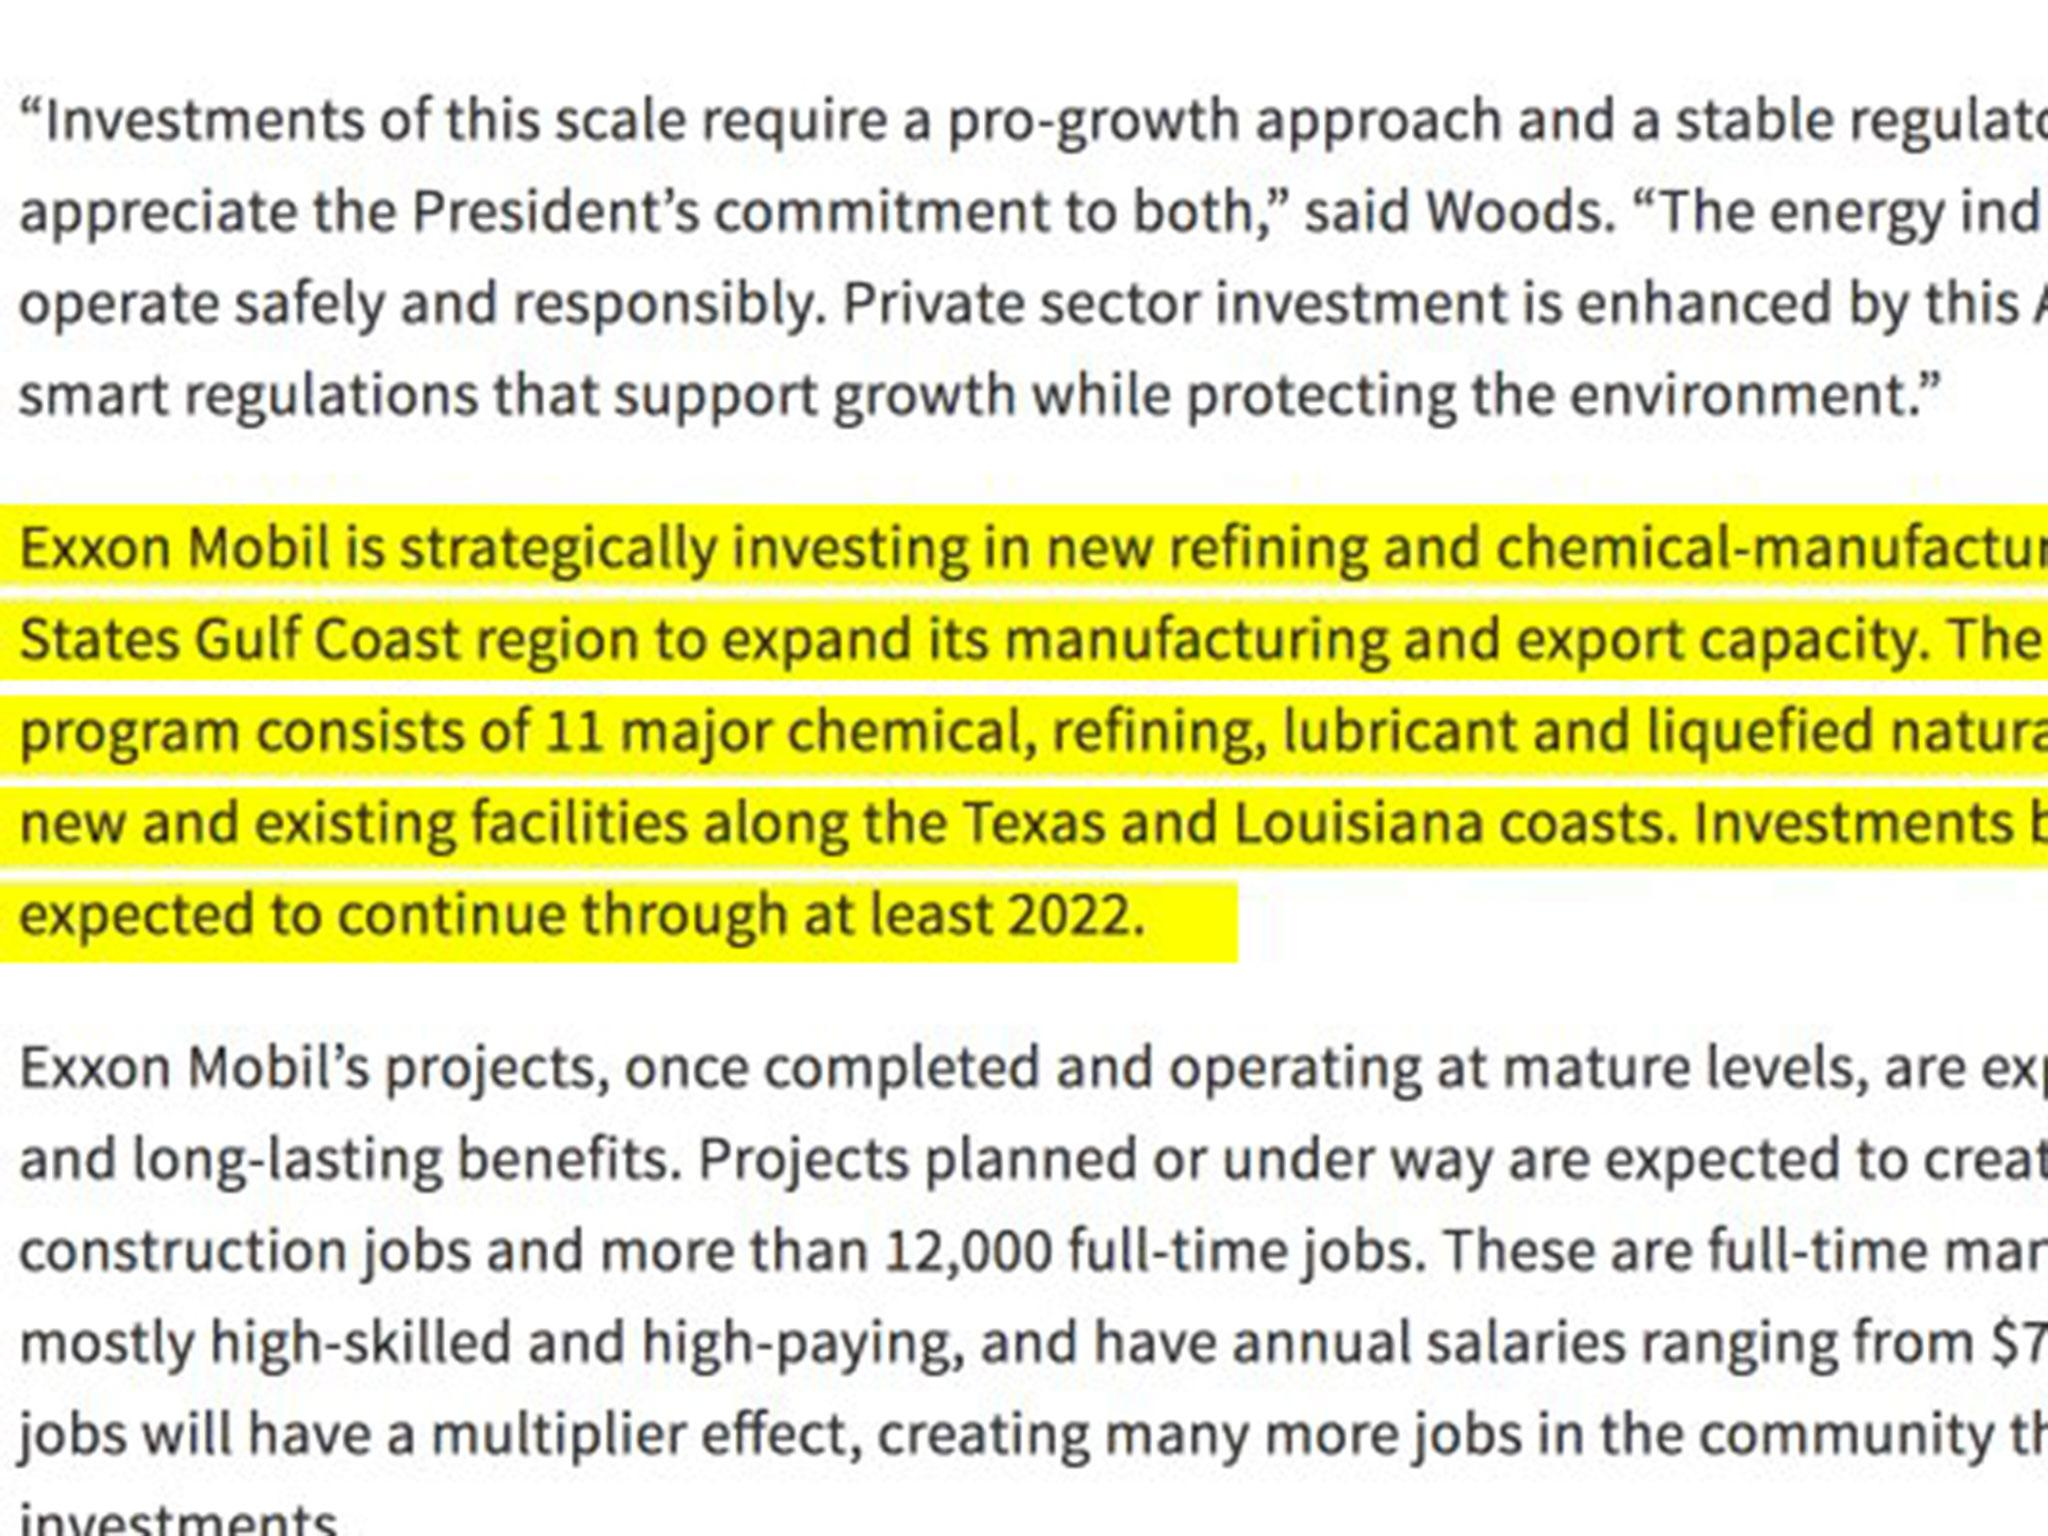 White House praises ExxonMobil with a paragraph copied and pasted from an Exxon press release